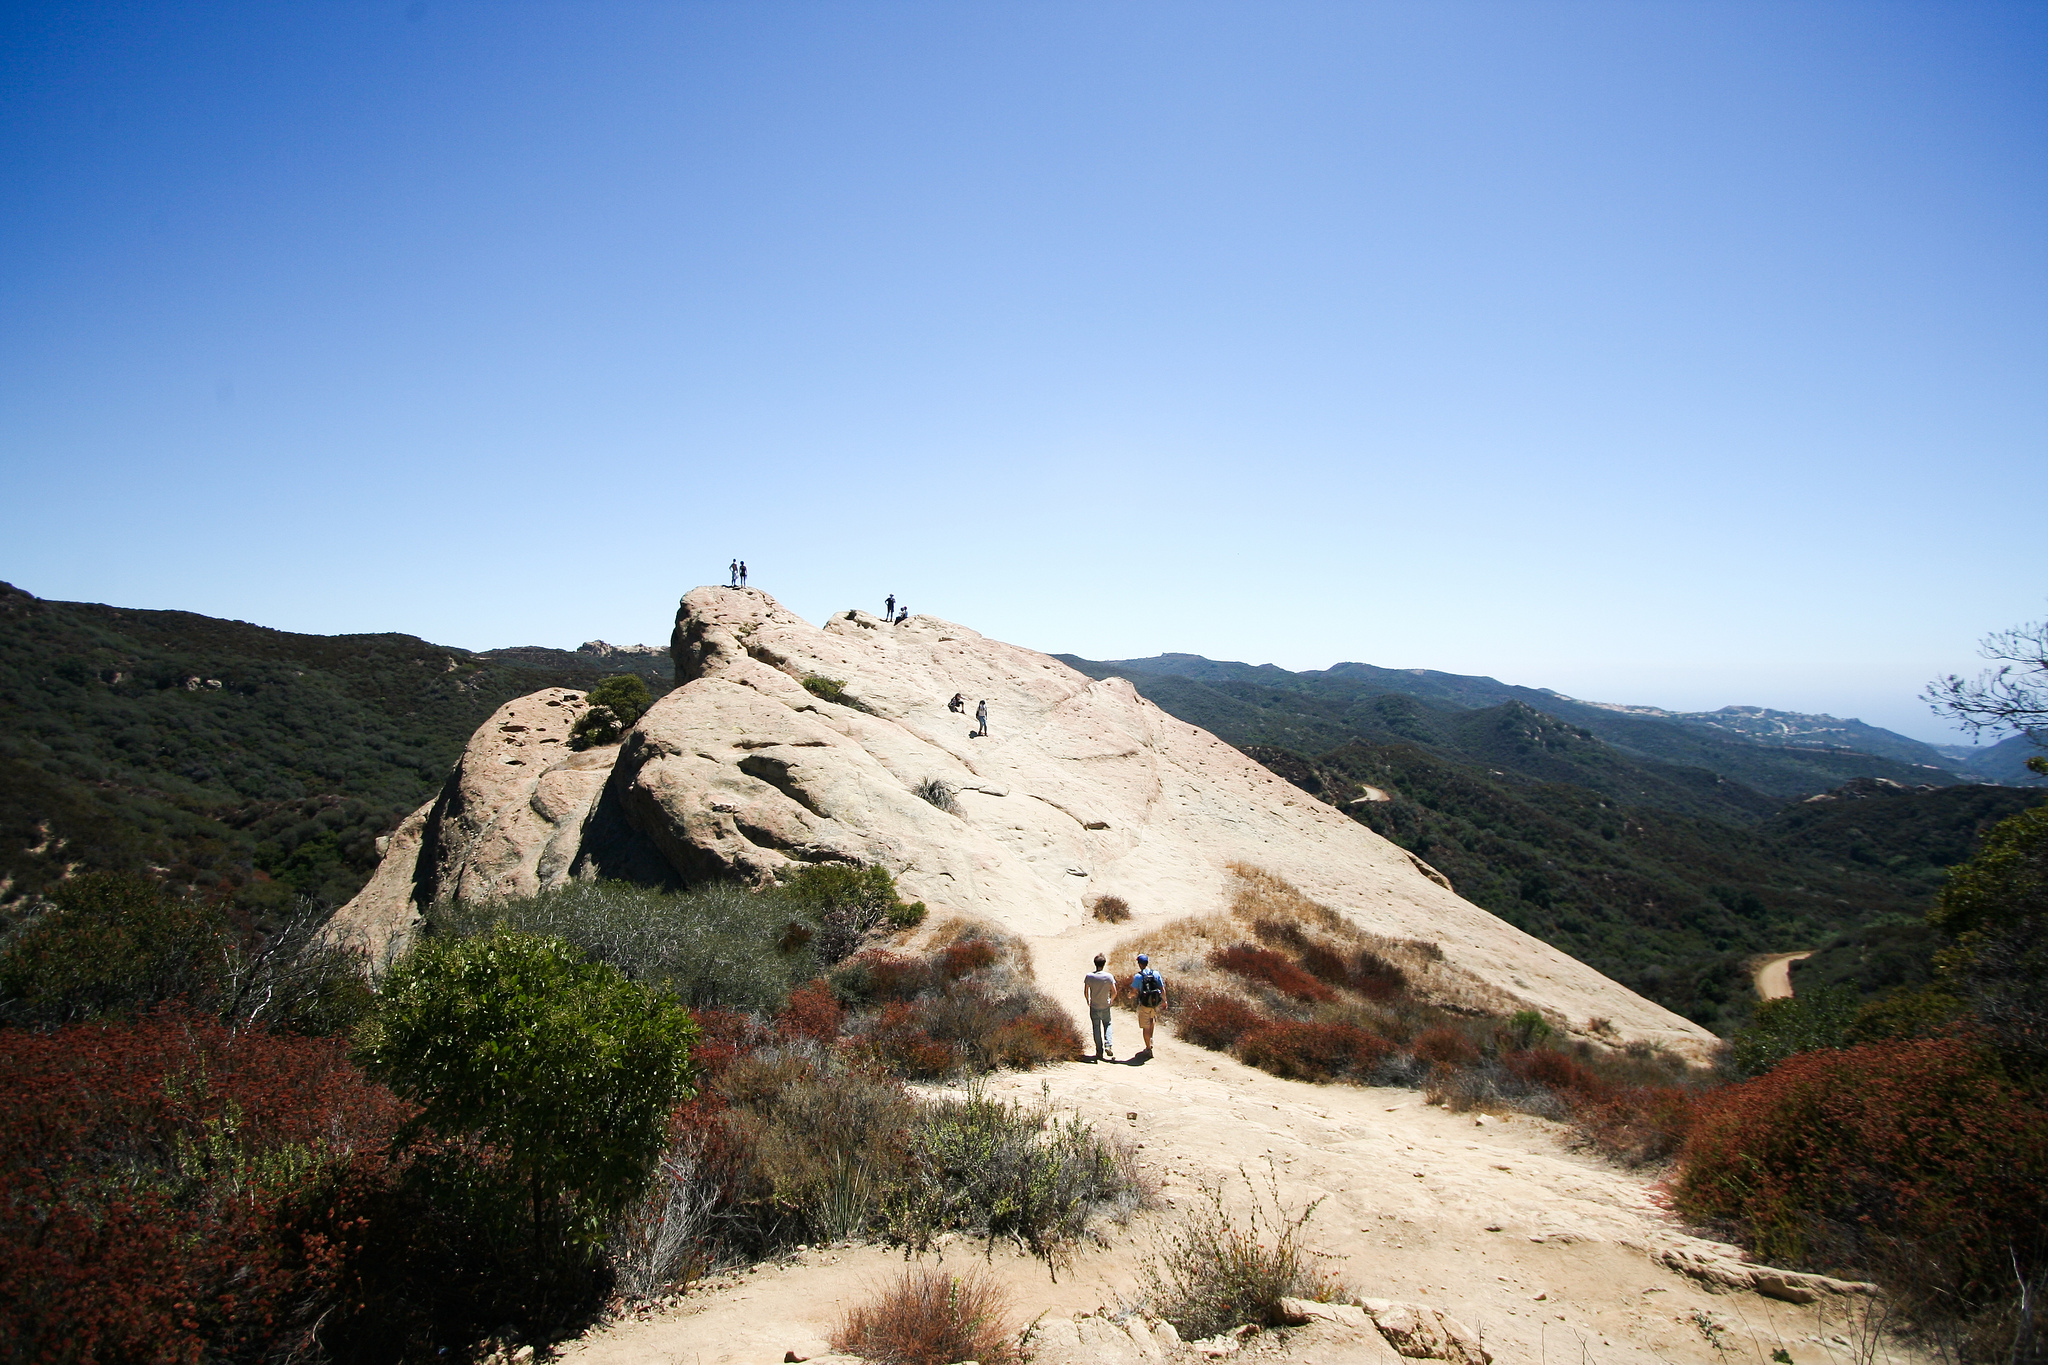 LA City Guide_Depart Foundation Valeria Sorci | meltingbutter.com_Santa Monica Mountains